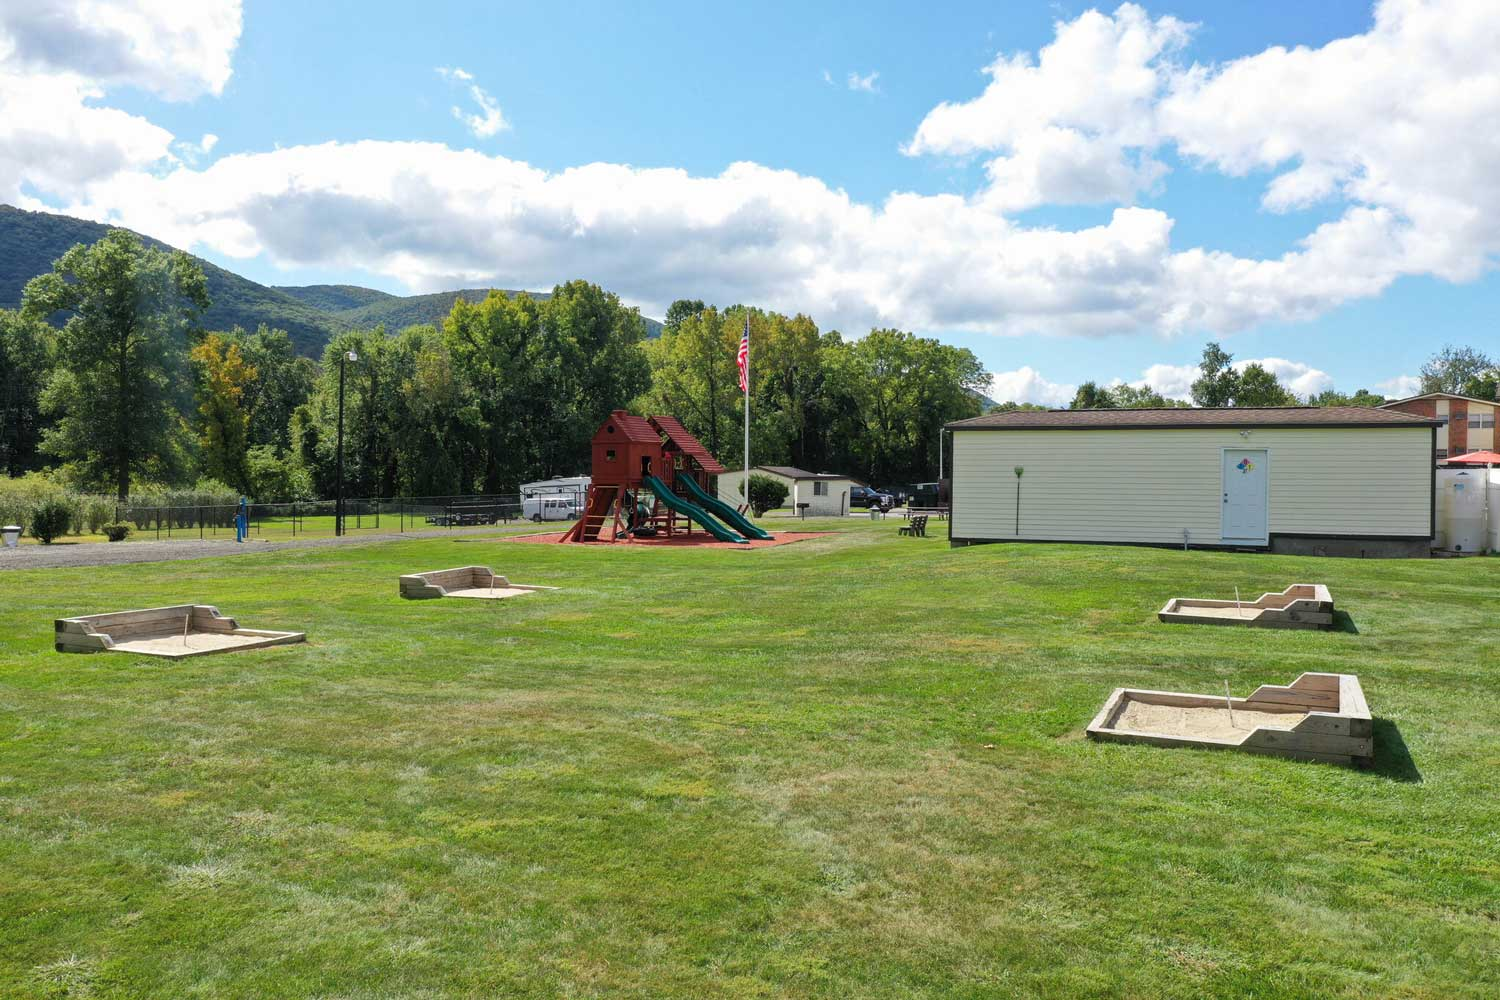 Outdoor Games at Mountainview Gardens Apartments in Fishkill, NY